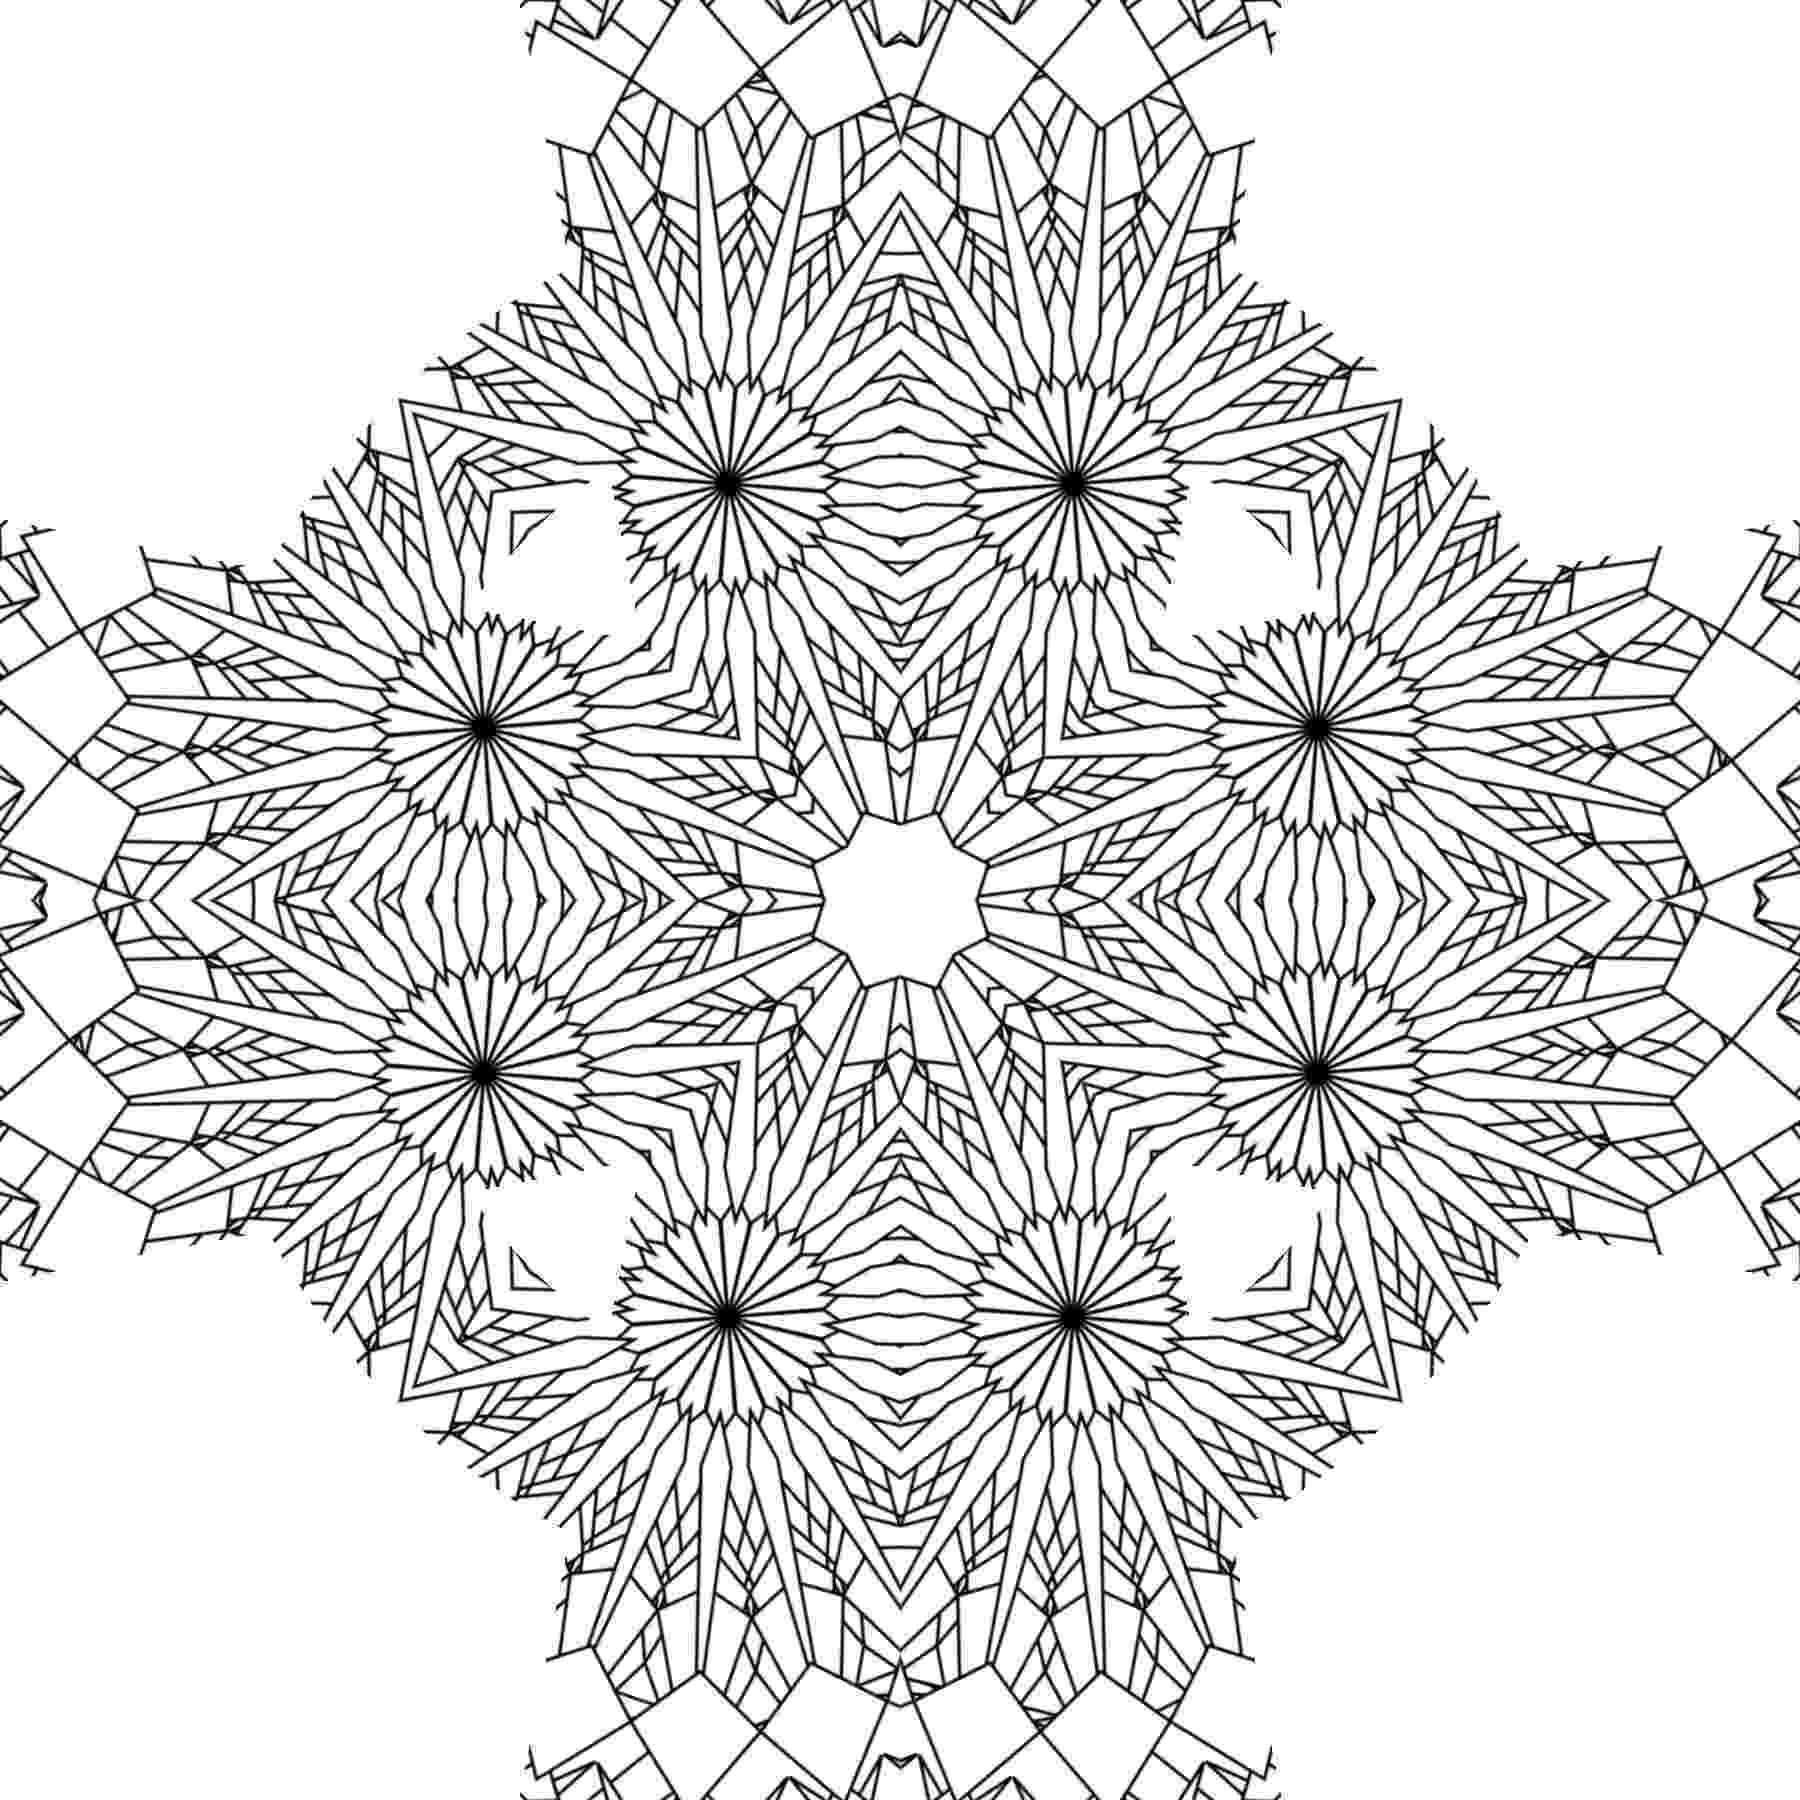 colouring sheets patterns free printable geometric coloring pages for kids sheets patterns colouring 1 1